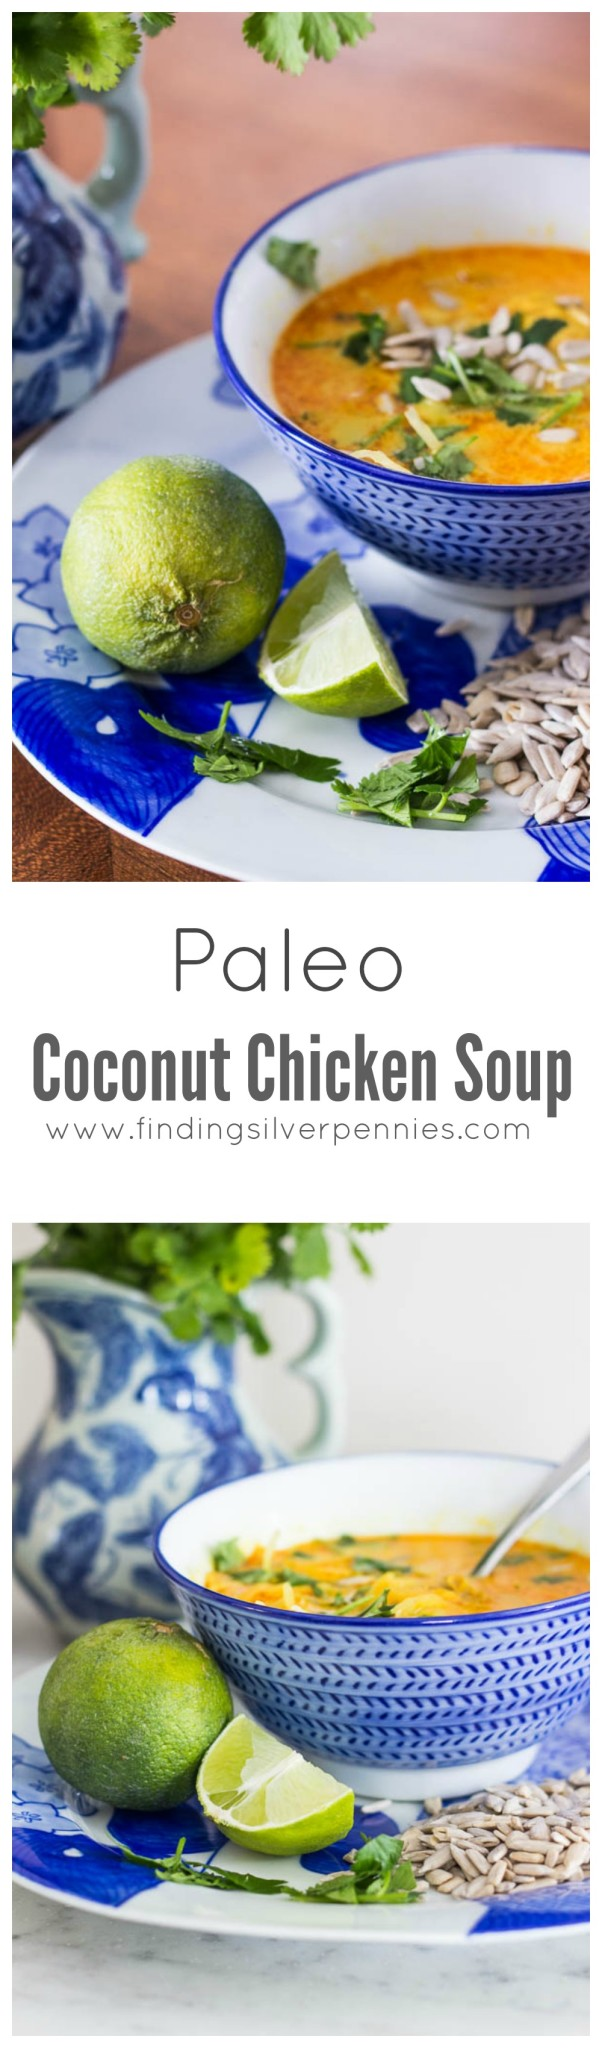 Paleo Coconut Chicken Soup I Finding Silver Pennies